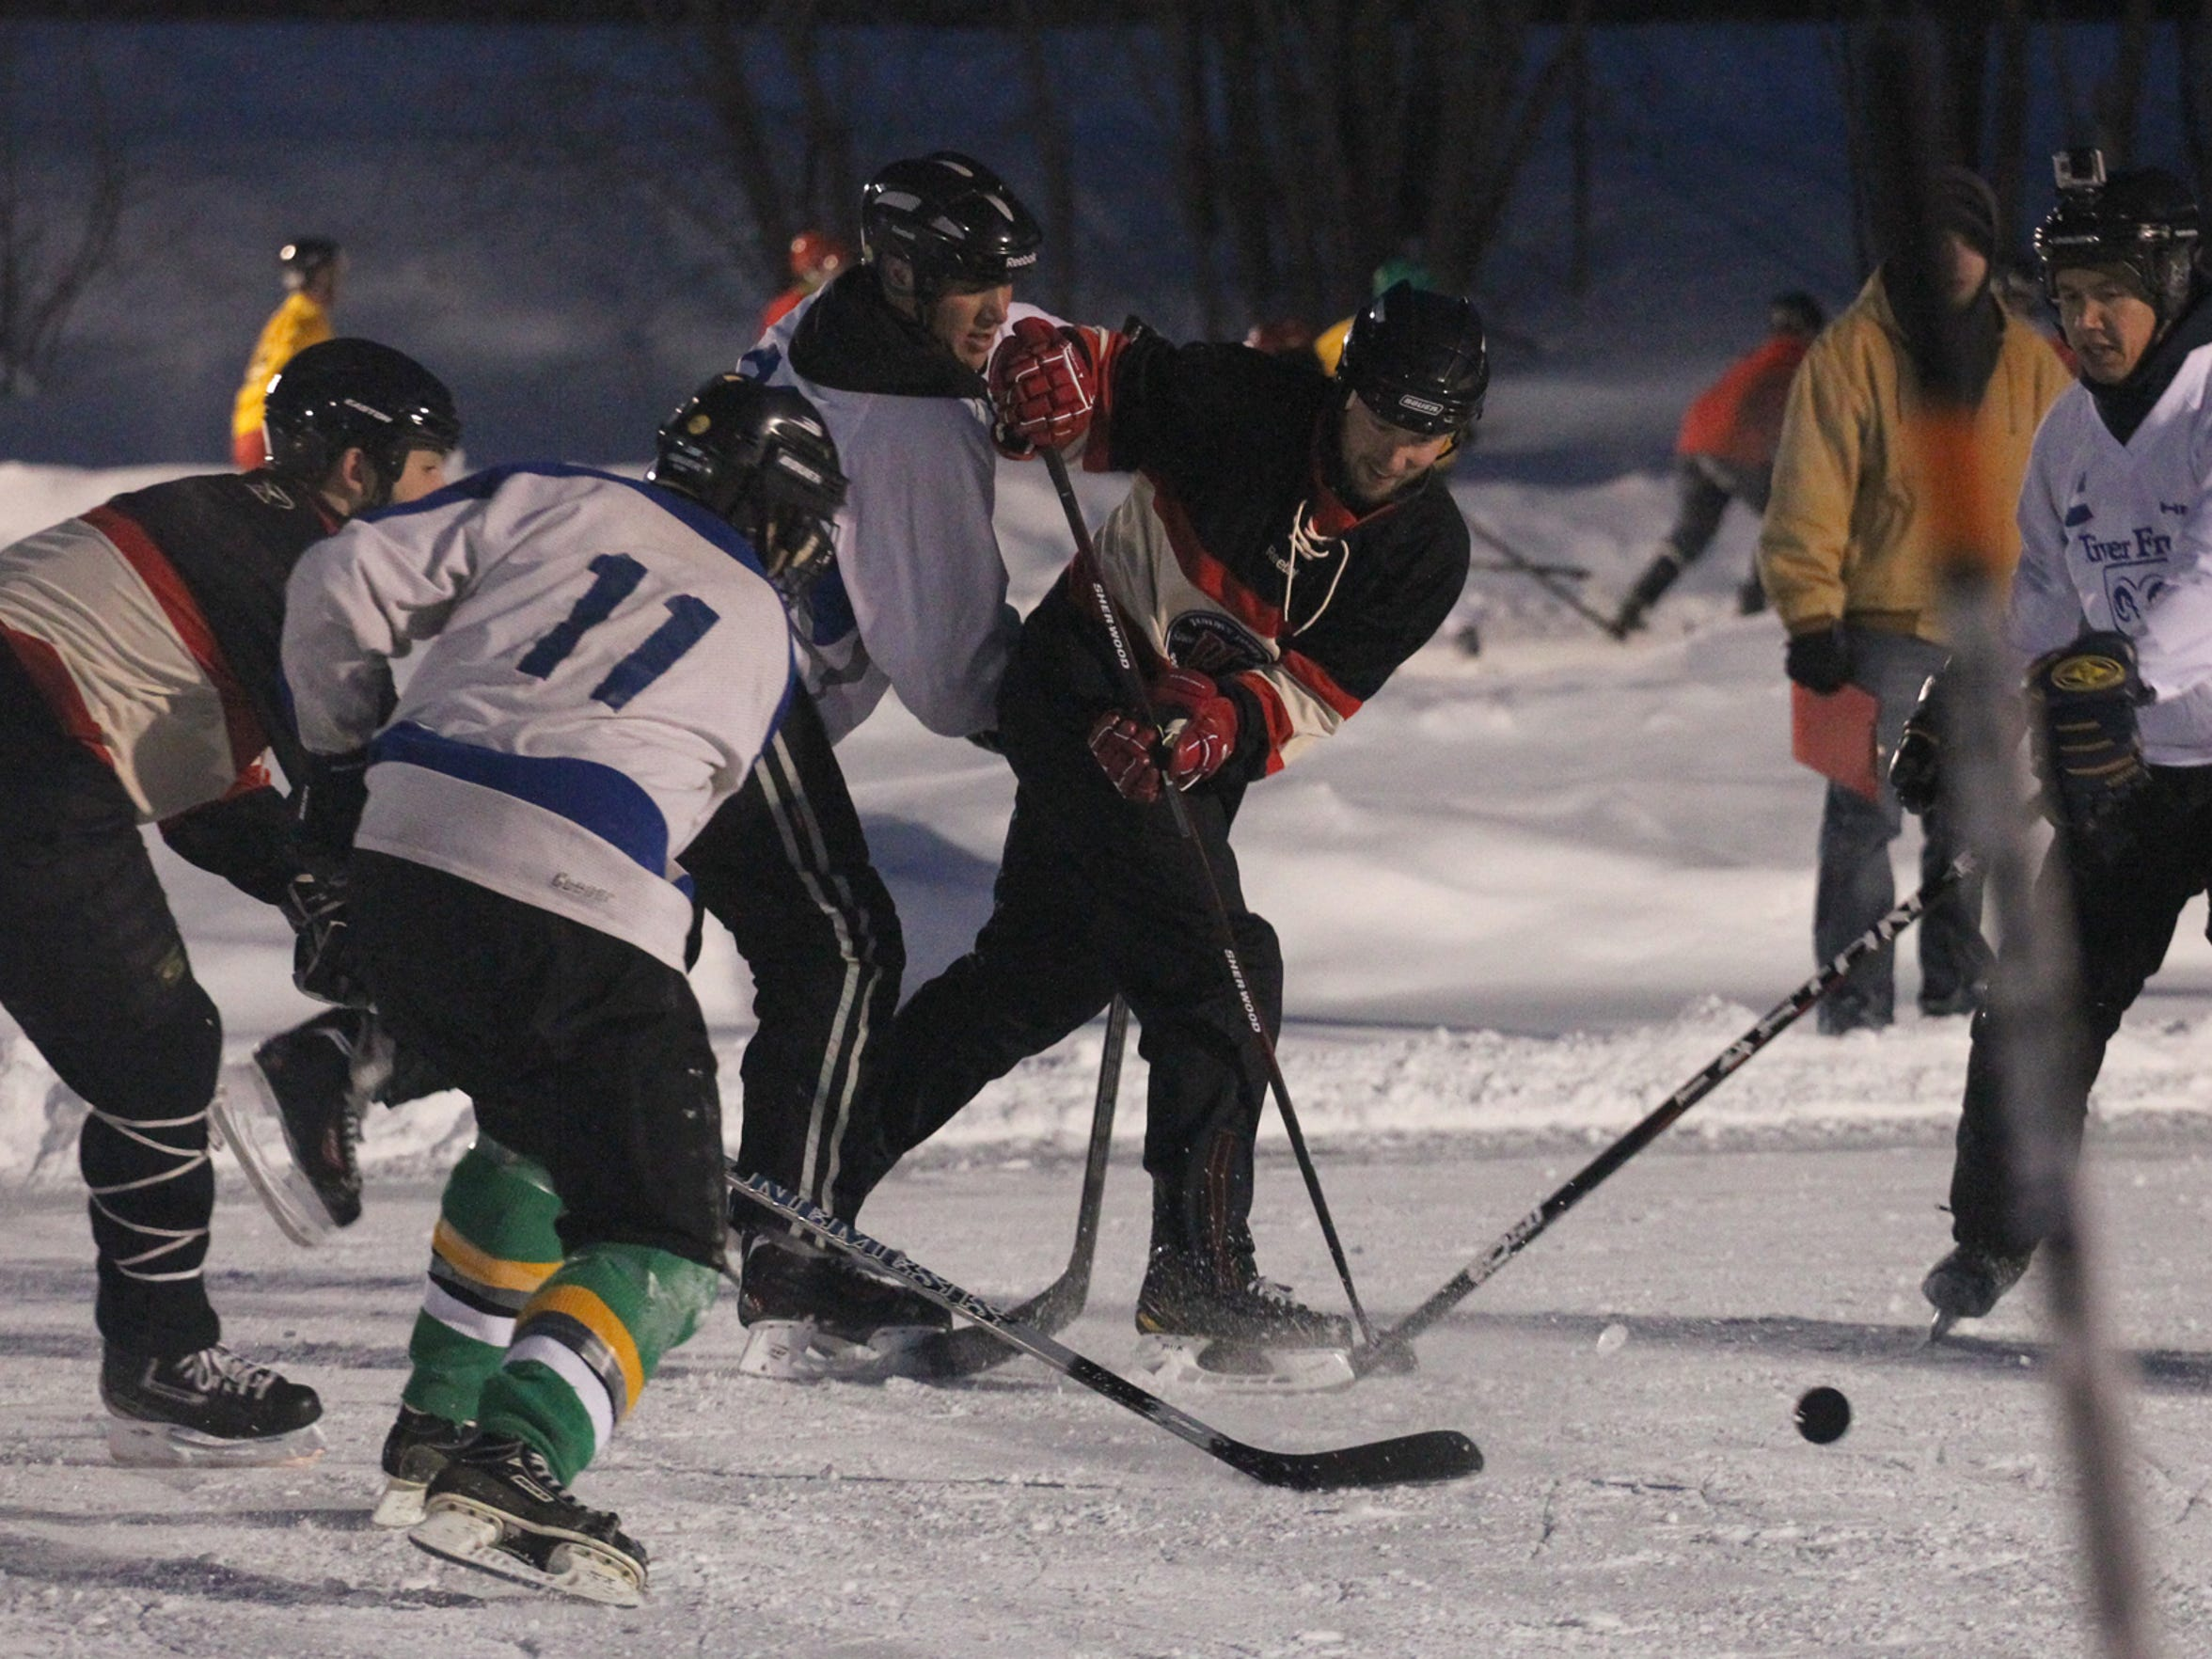 Players battle for the puck at the 2013 Midwest Freeze Leinenkugel's Classic Adult Pond Hockey tournament at Sunny Vale Park in Wausau.